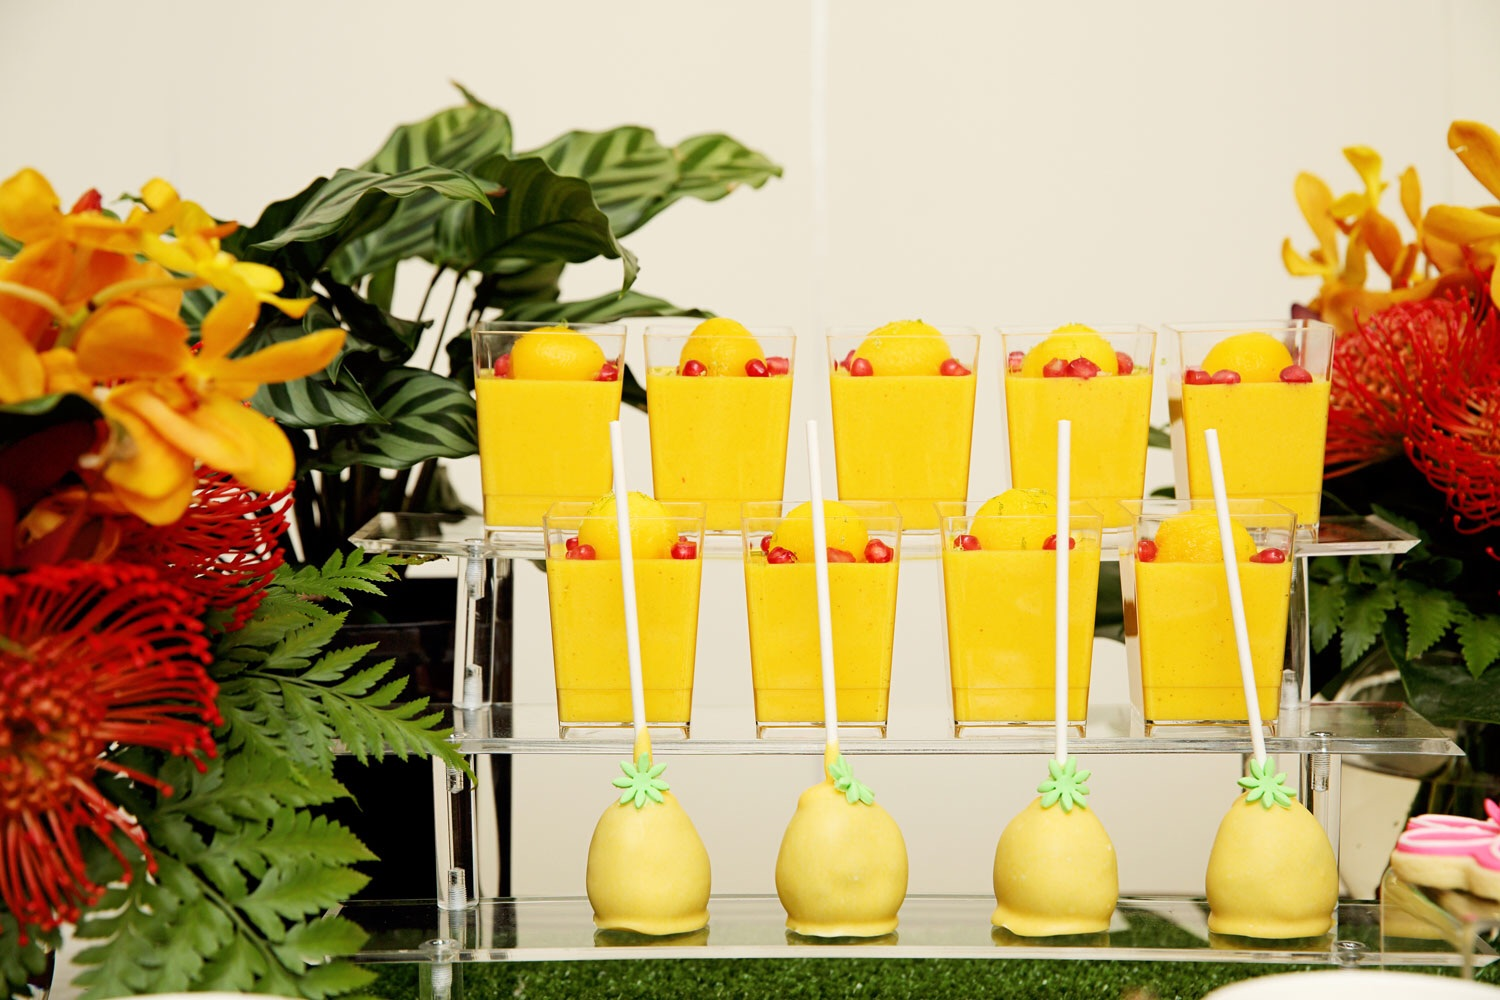 These mango mousses are topped with fresh mango and pomegranates and a grate of lime zest and are made by the talented Lopa from The Pumpkin Carriage. The pineapple cake pops are by One Sweet Chick